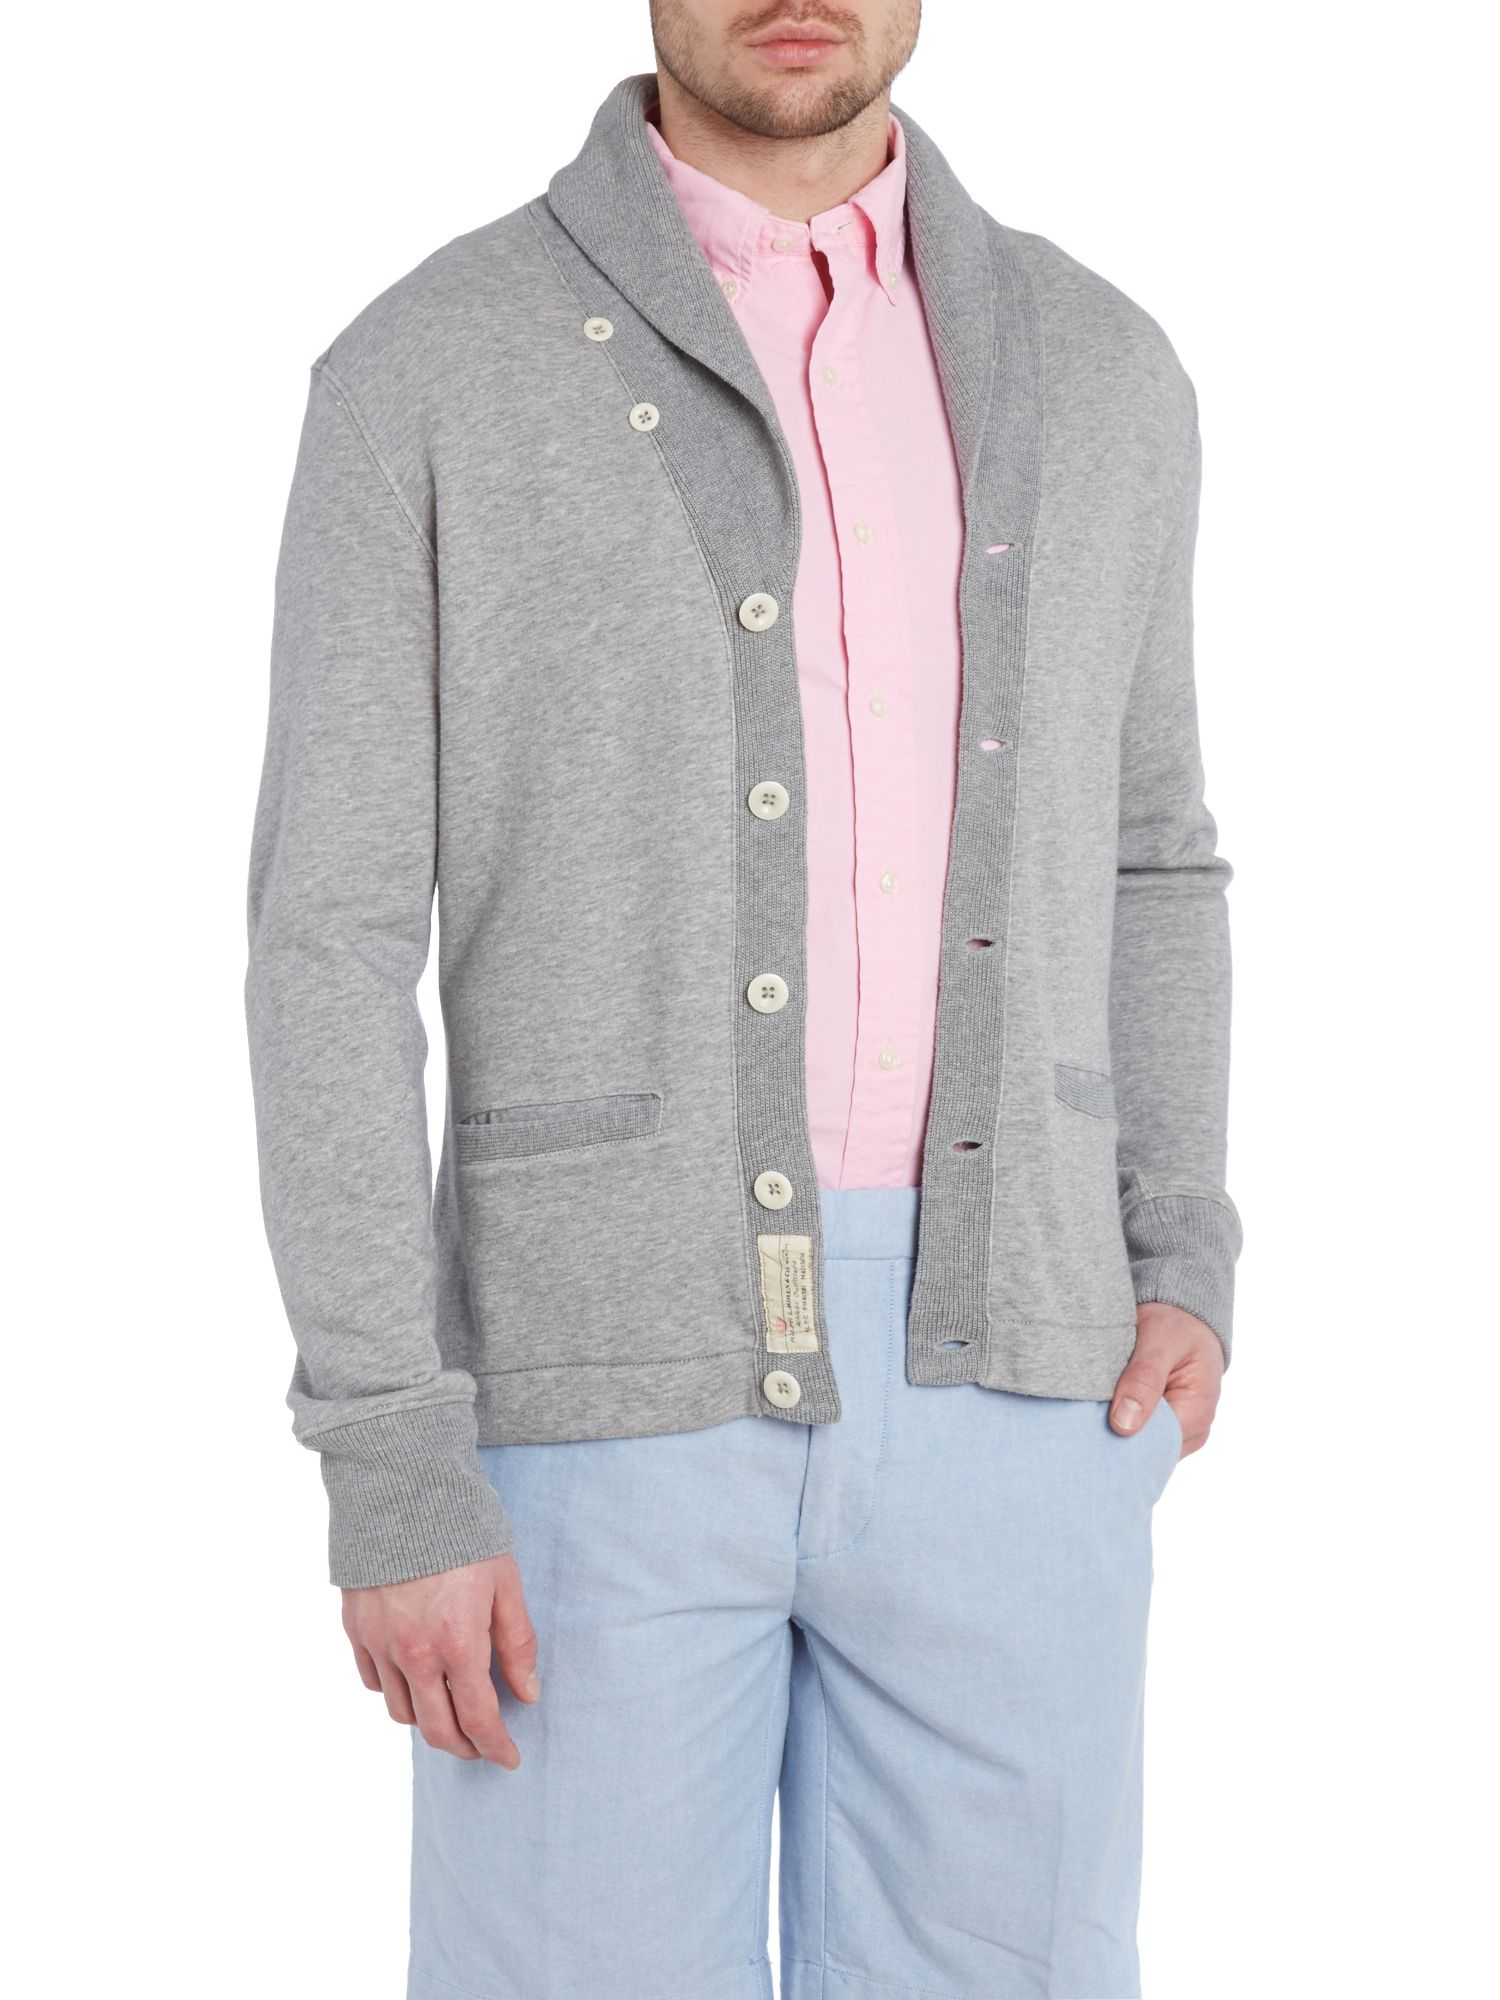 Heavy knit shawl collar button down cardigan